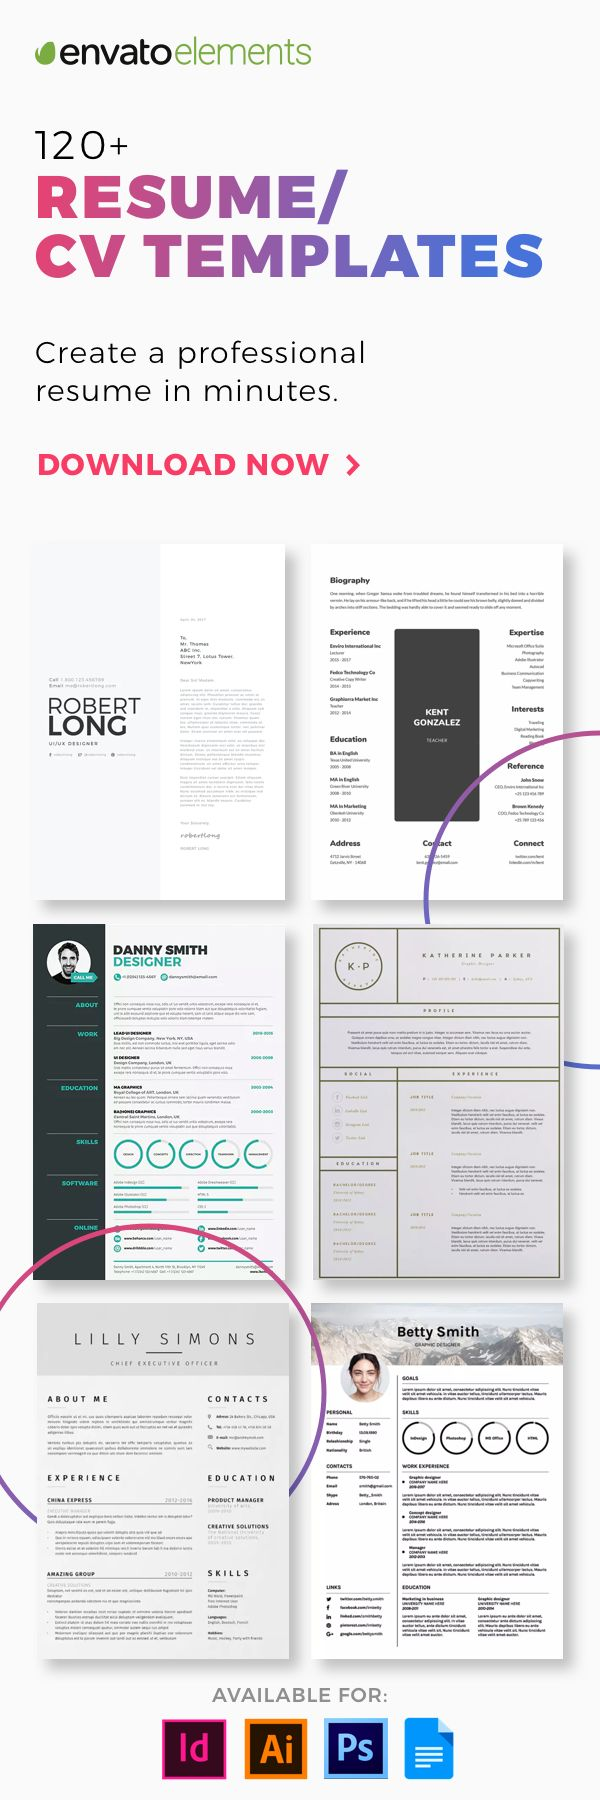 Unlimited Downloads of 2018's Best Resume Templates